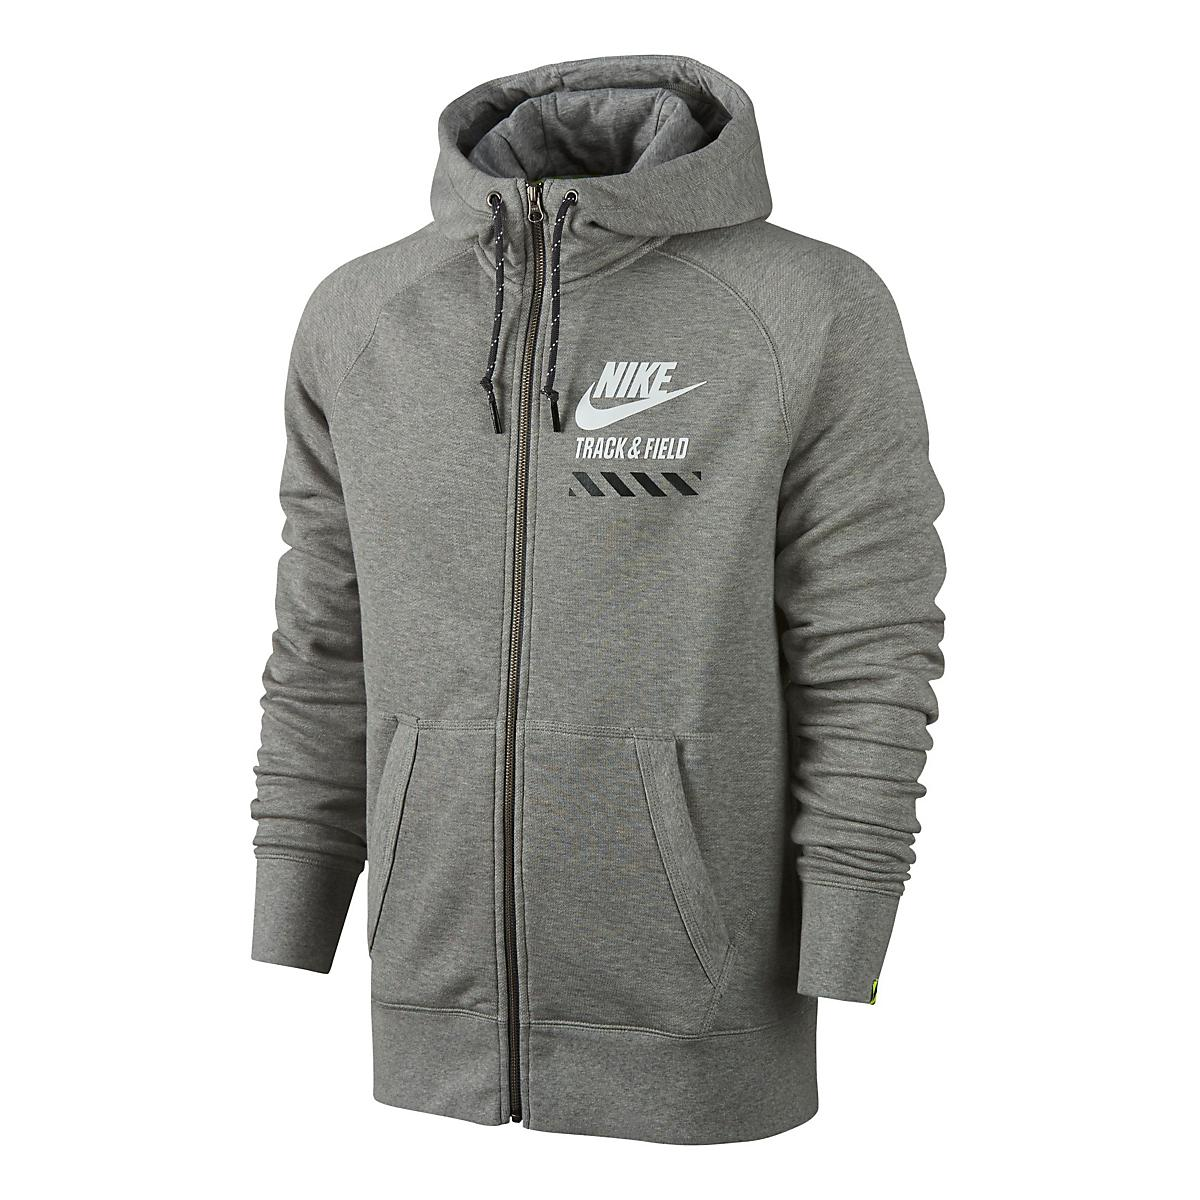 ba51c3dd2ca0 Mens Nike AW77 FU NTF Fly Full-Zip Hoodie Running Jackets at Road Runner  Sports